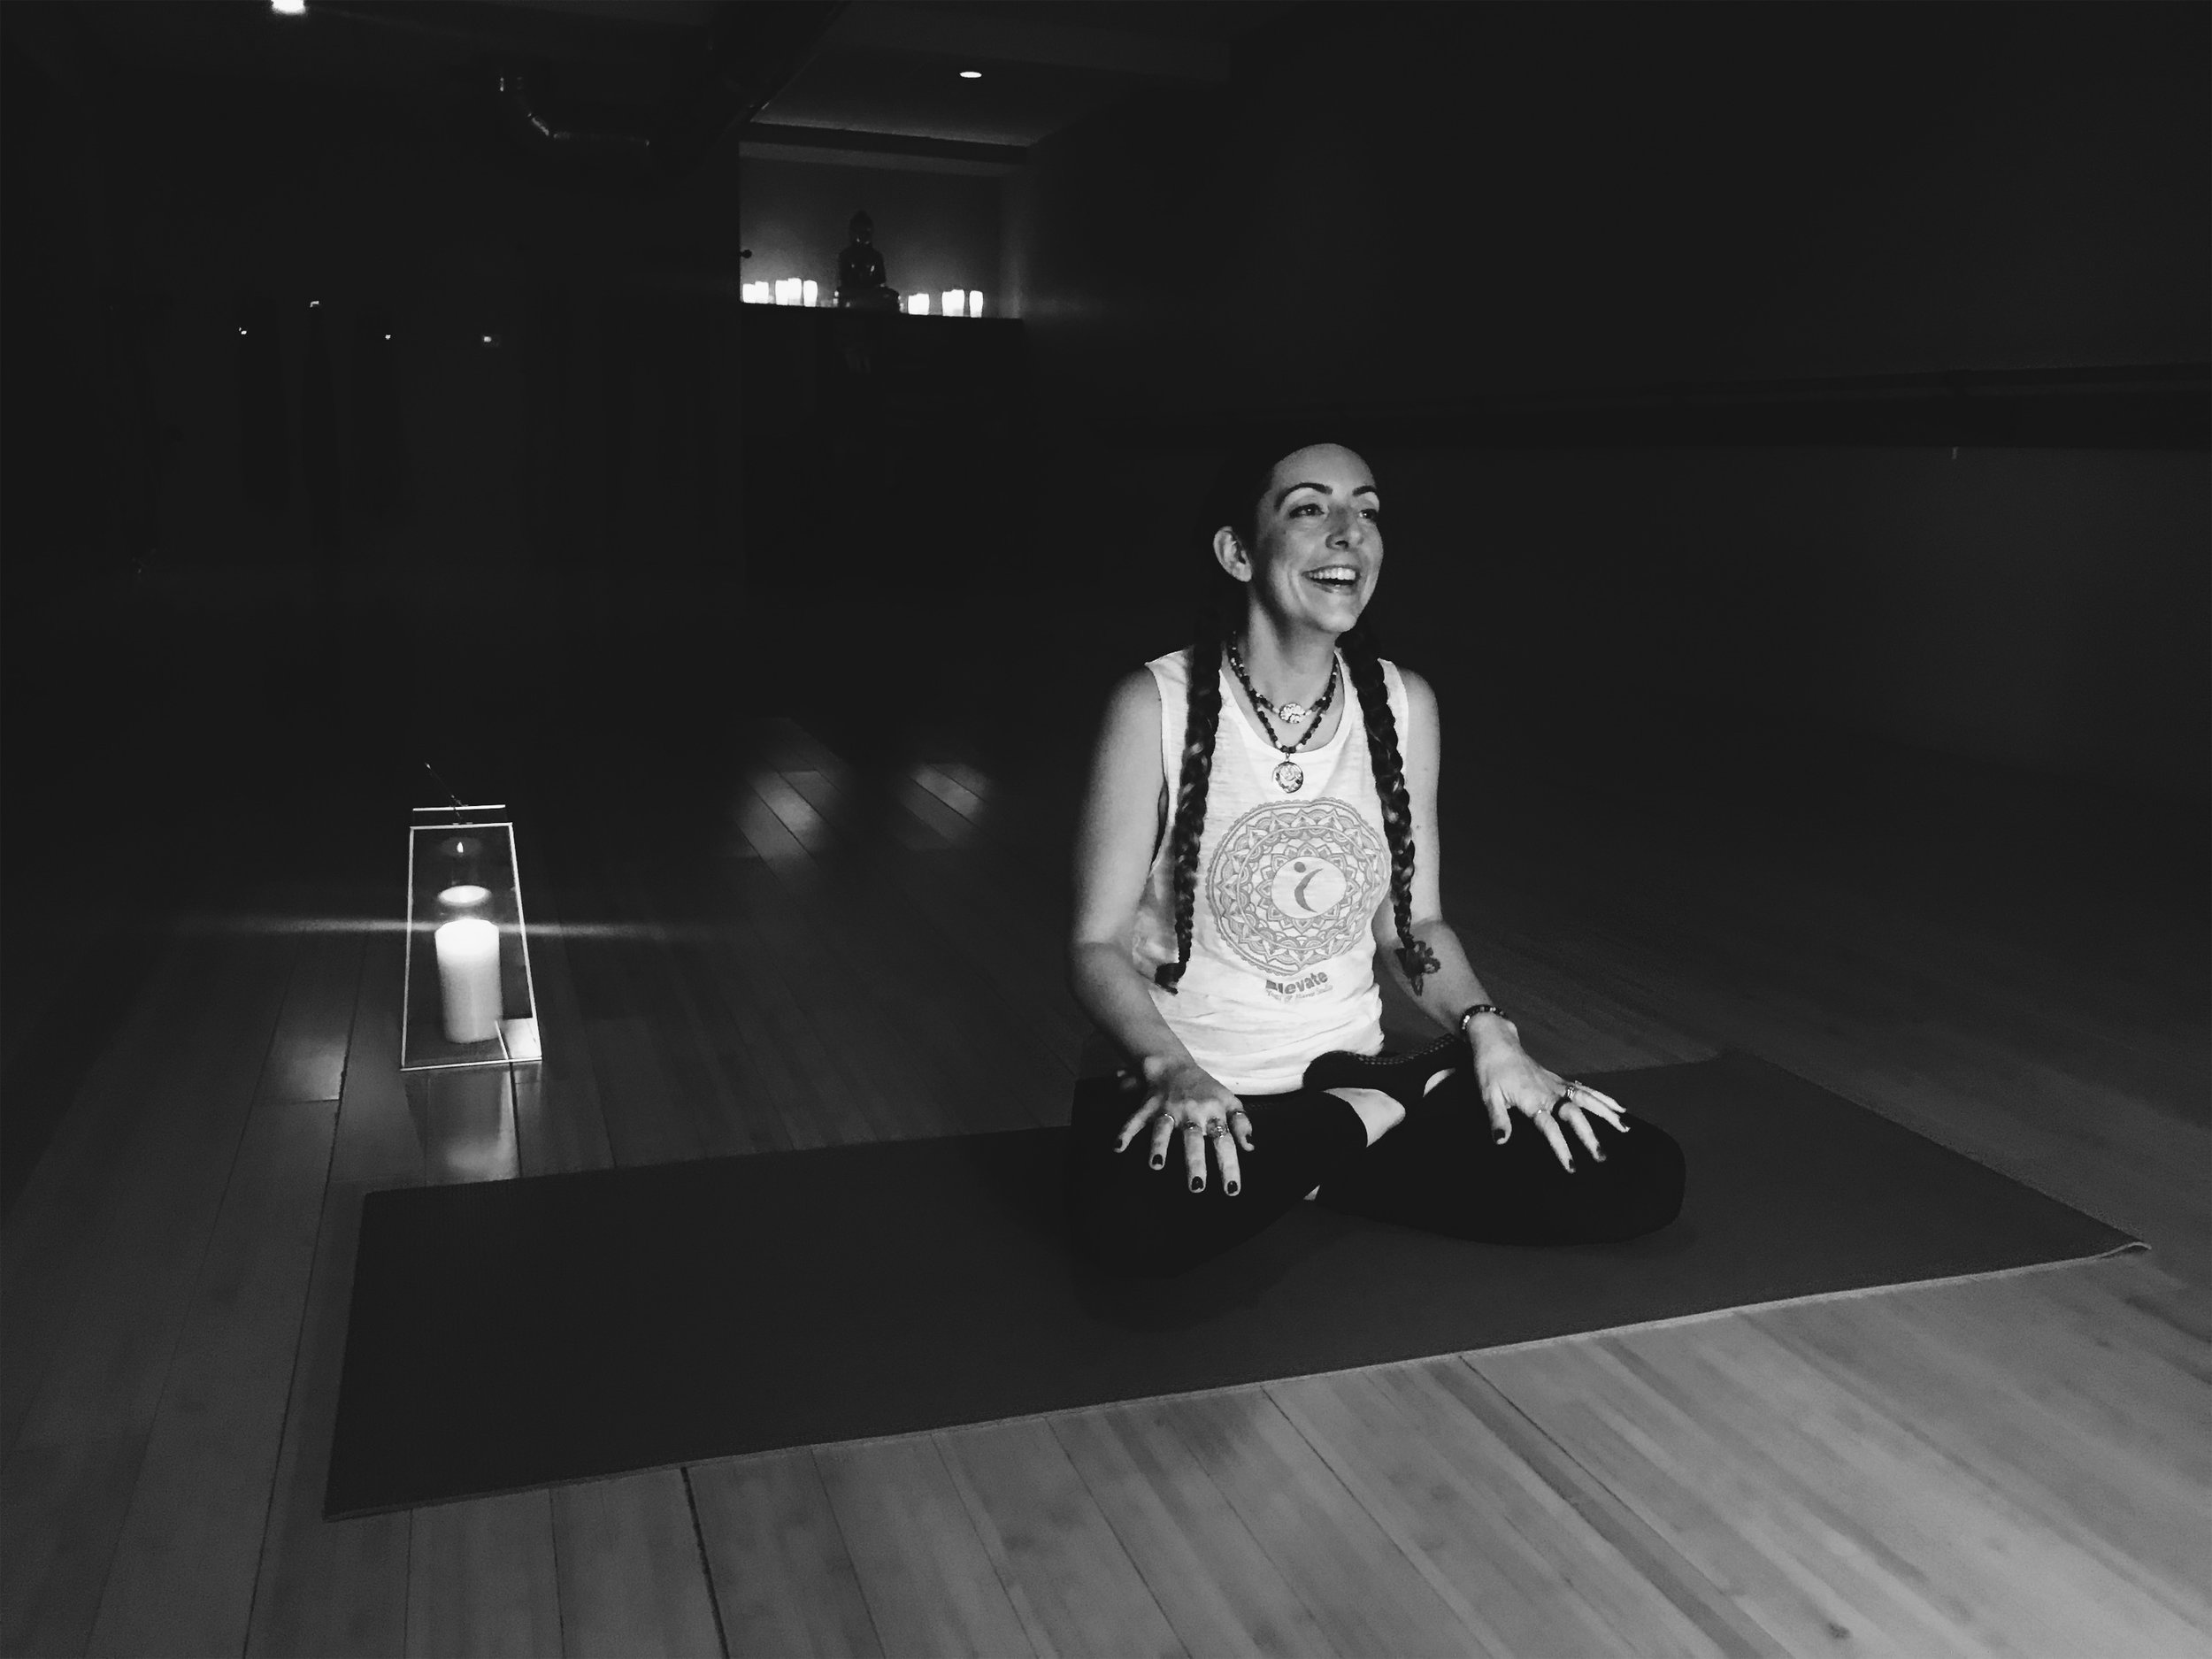 """Gina Vicente - For Gina Vicente, yoga has given her such a freedom in every aspect of her life and she is joyed to have the opportunity to share it with others.Melting the mind, body, and spirit both on and off the mat, with focus on Pranayama (breath energy) and alignment to better allow students a chance to learn about and challenge themselves in a compassionate, fun and safe environment.Gina has her 200 HYTT Certificate and has completed the Yoga Wall Training here at Elevate. She enjoys incorporating joyful, energetic flows, stretching, balancing, and restorative asanas into everchanging classes. Taking inspiration from aspects of B.K.S. Iyengar's teaching, nature and others, she encourages everyone on their path of self-awareness.""""Yoga is the journey of the self, through the self, to the self."""" – The Bhagavad Gita"""